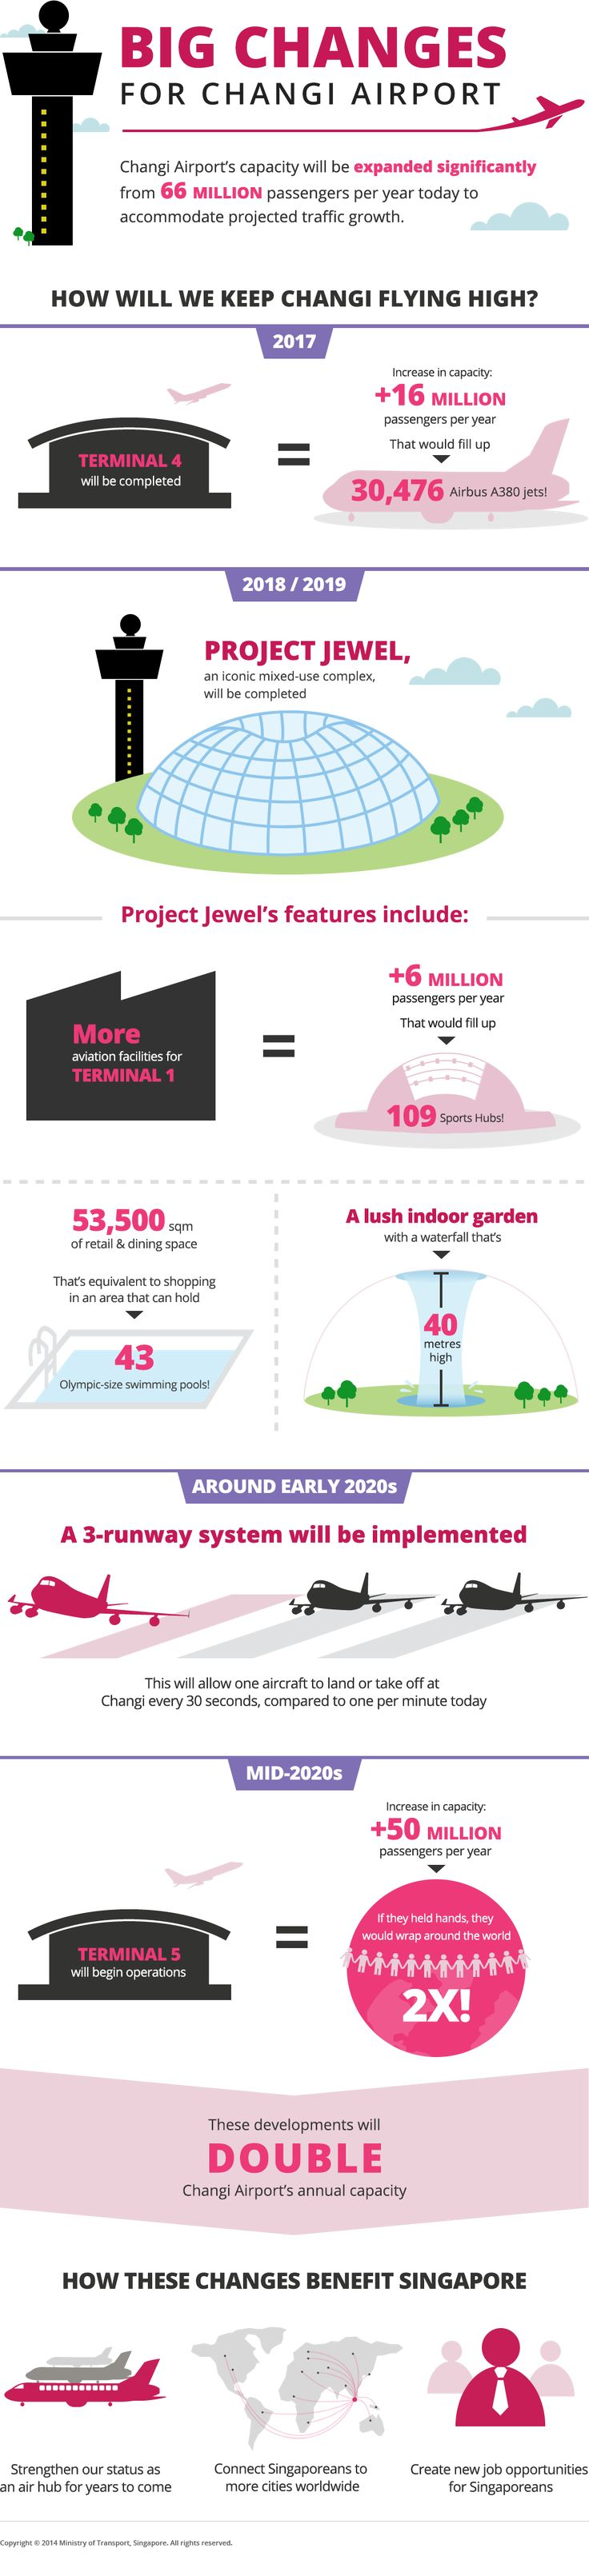 Big changes for Changi Airport - content